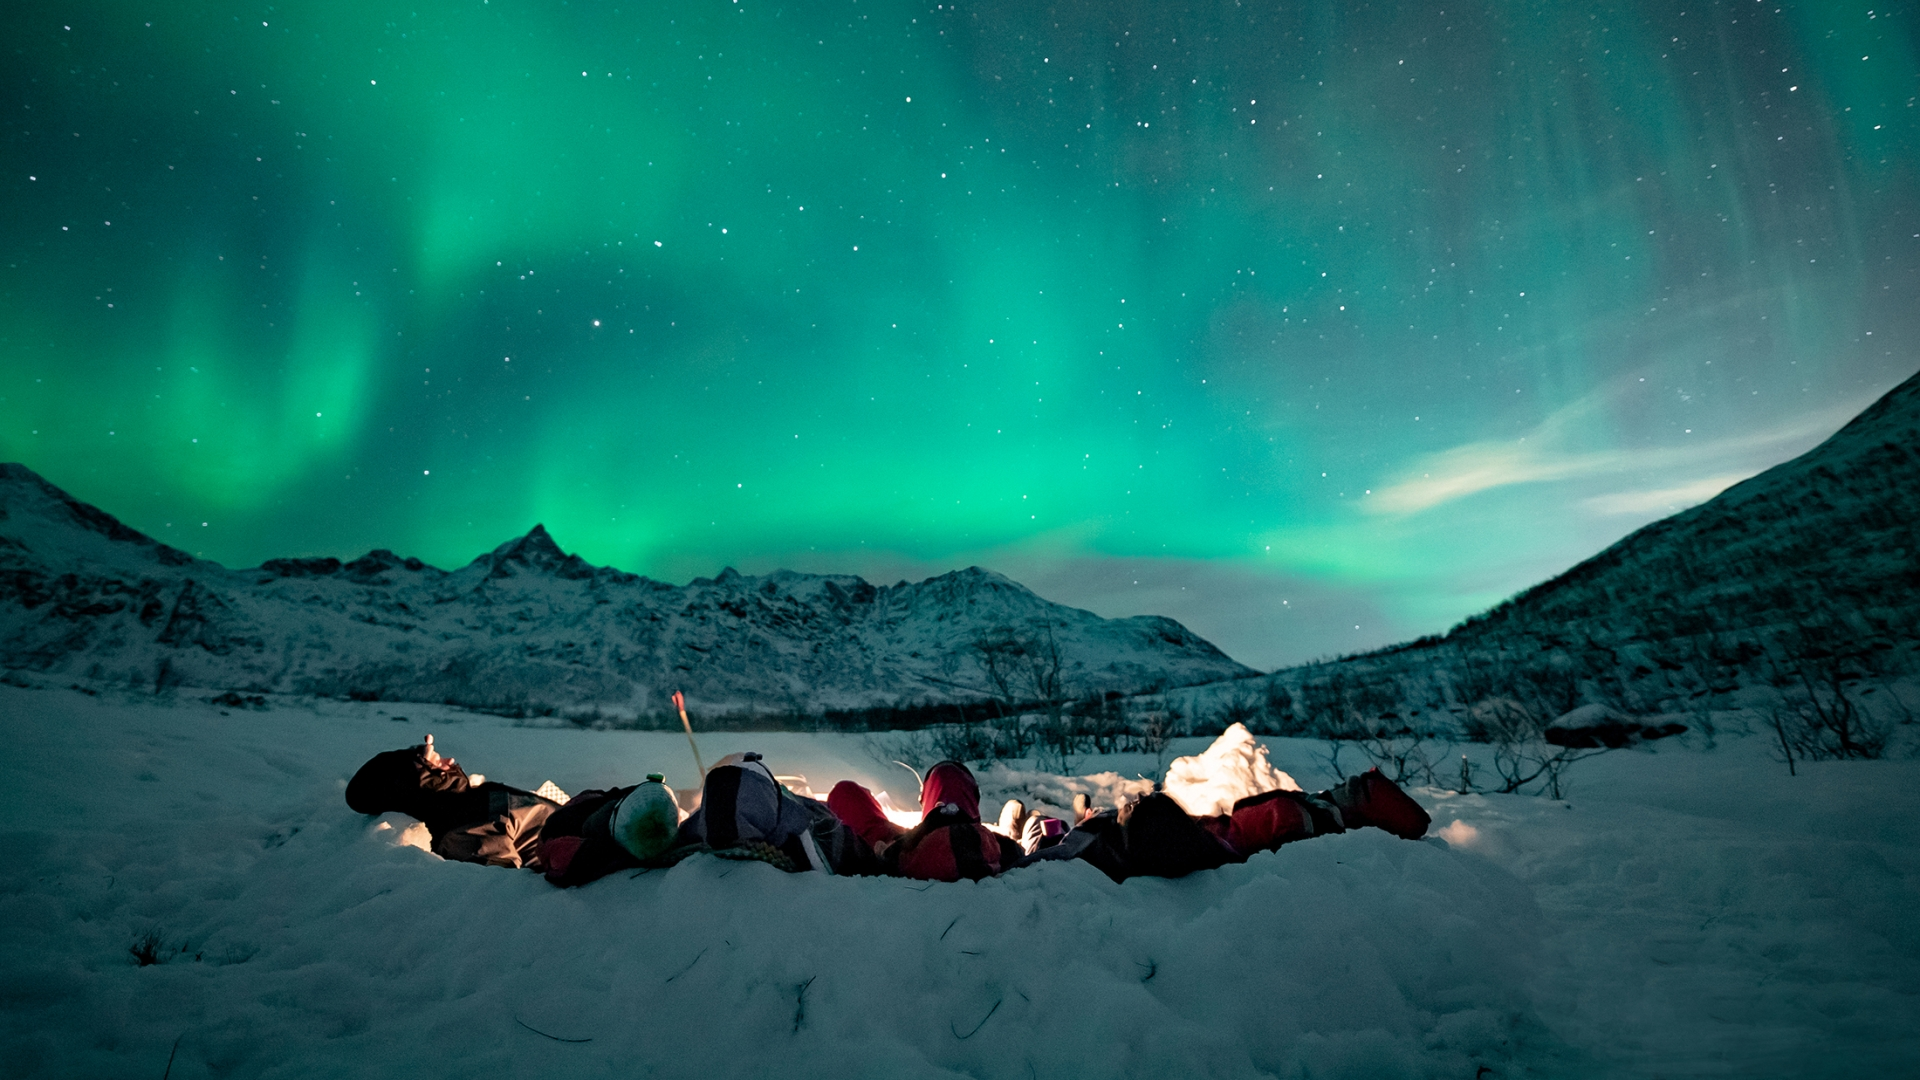 People watching the Northern Lights in the snow